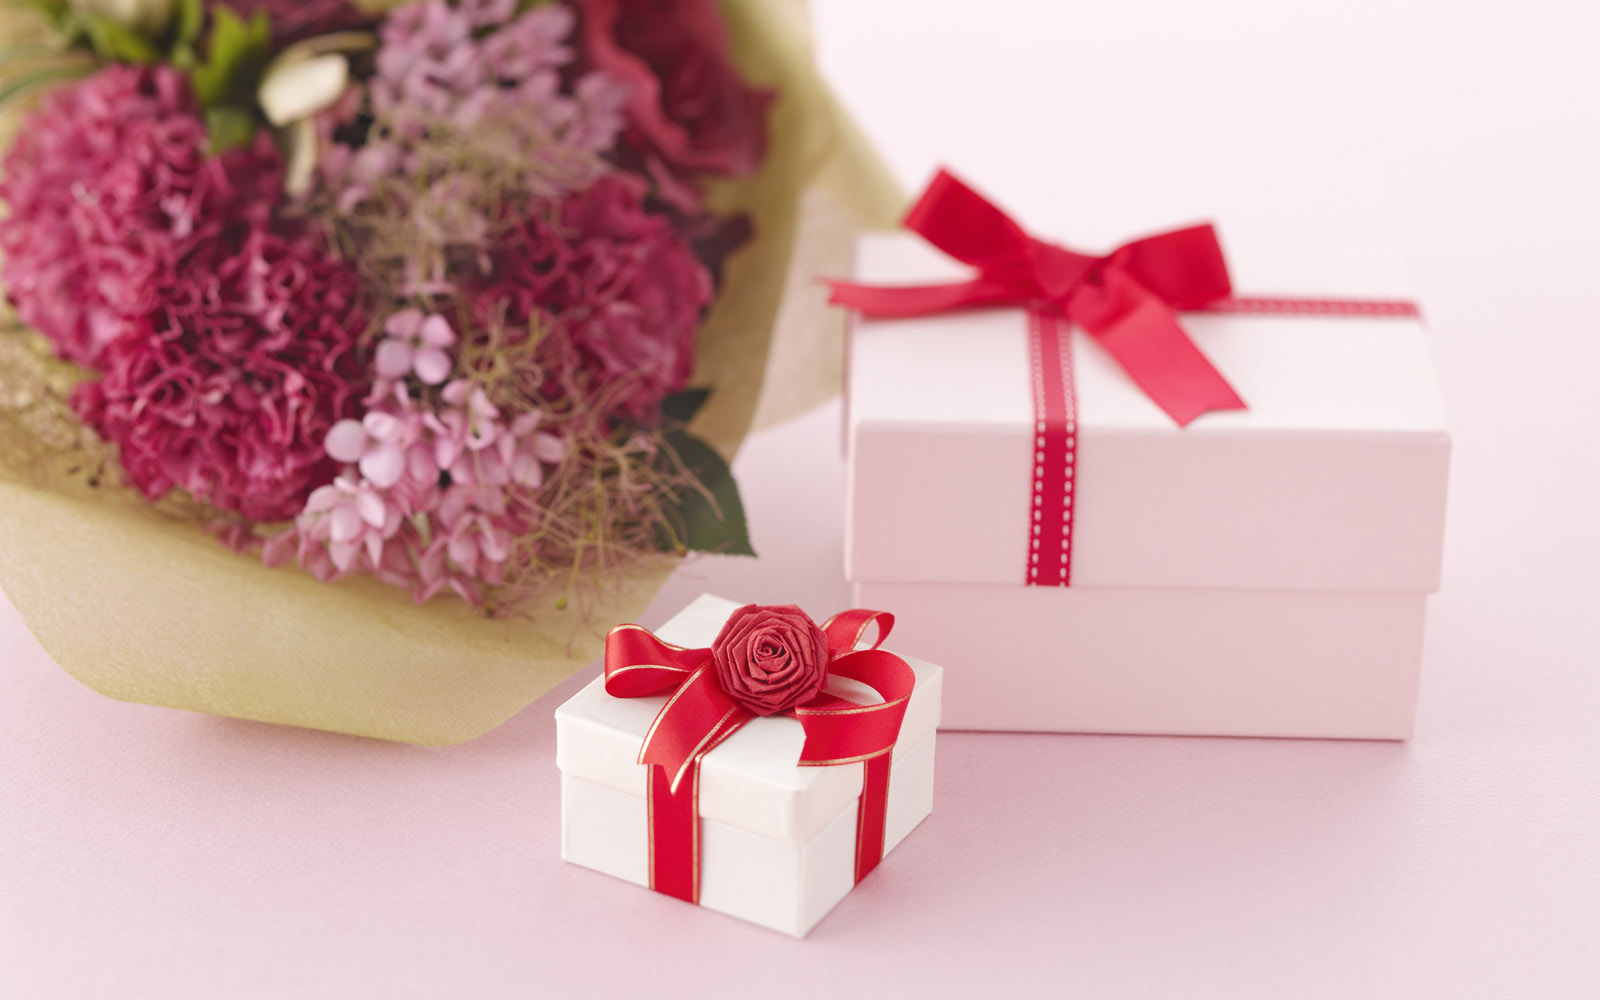 online flowers and gift delivery fro Withlovenregards